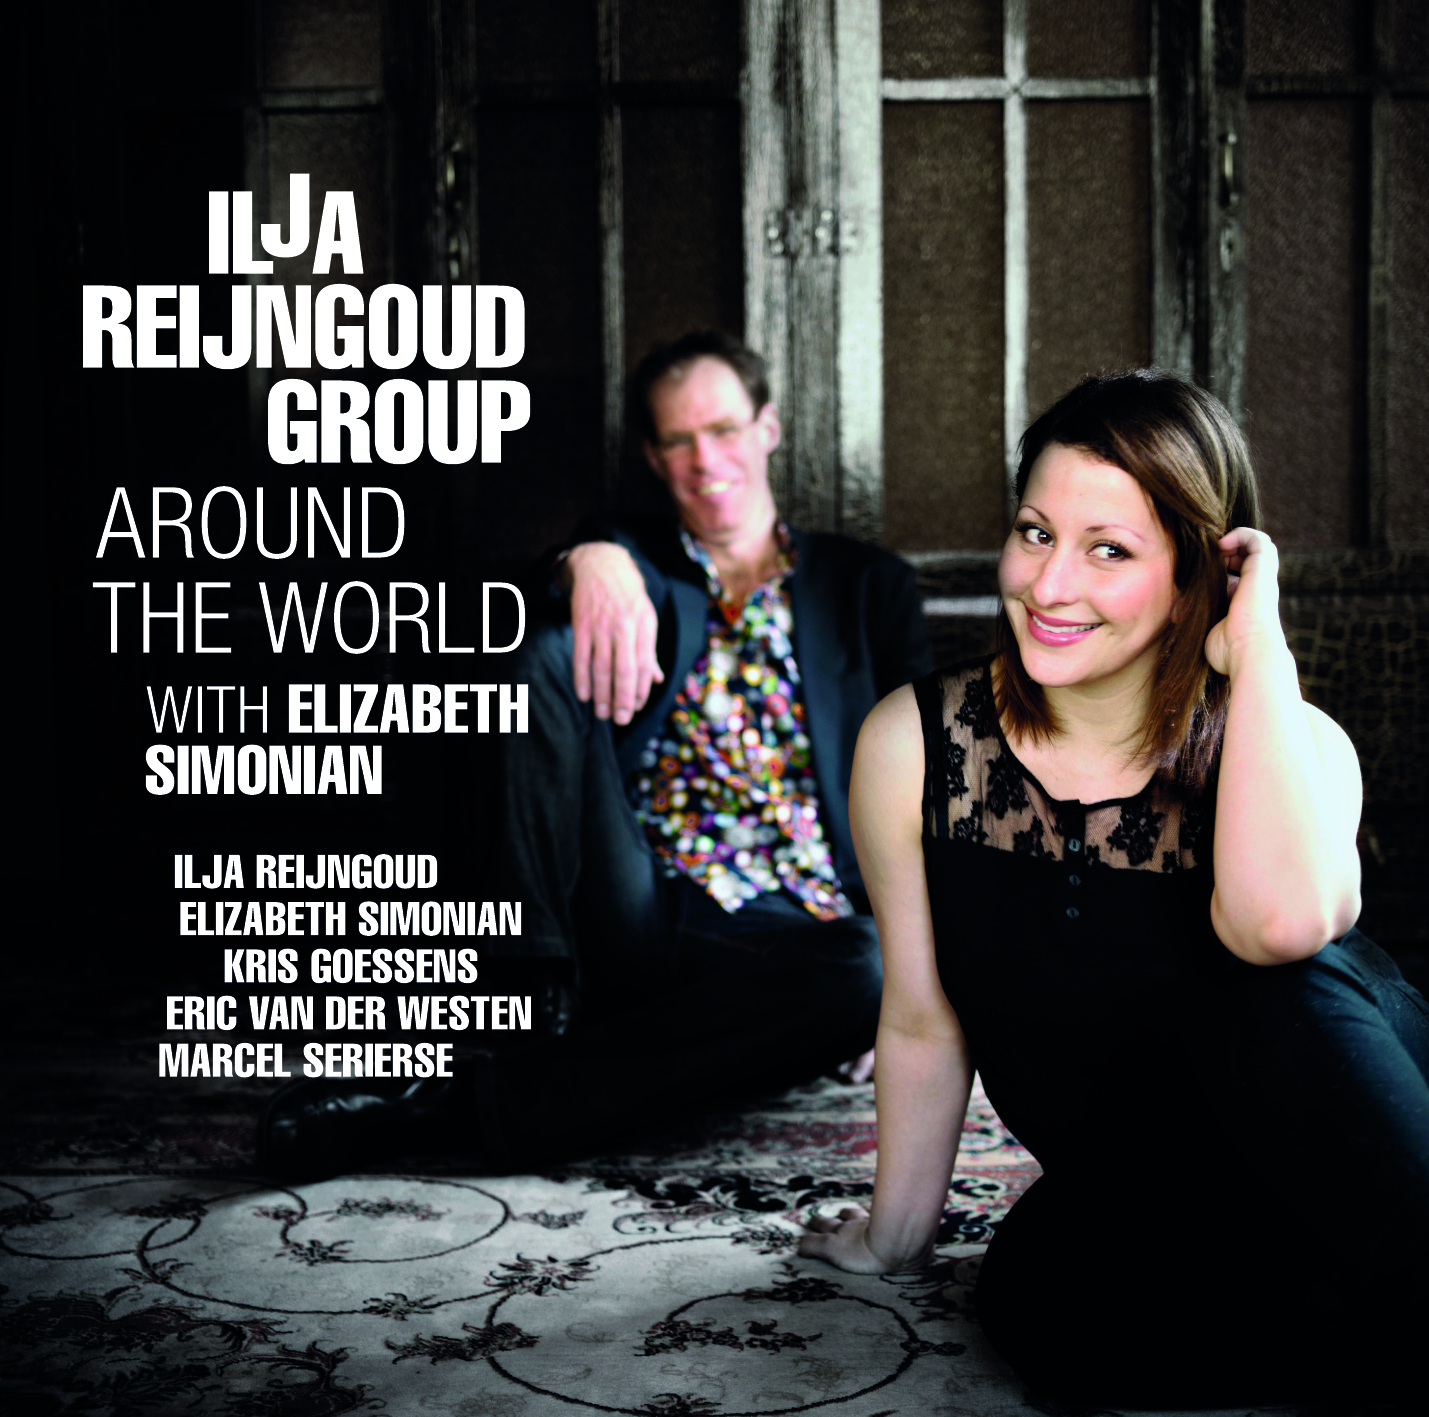 Ilja Reijngoud Group – Around The World (with Elizabeth Simonian) (2012)